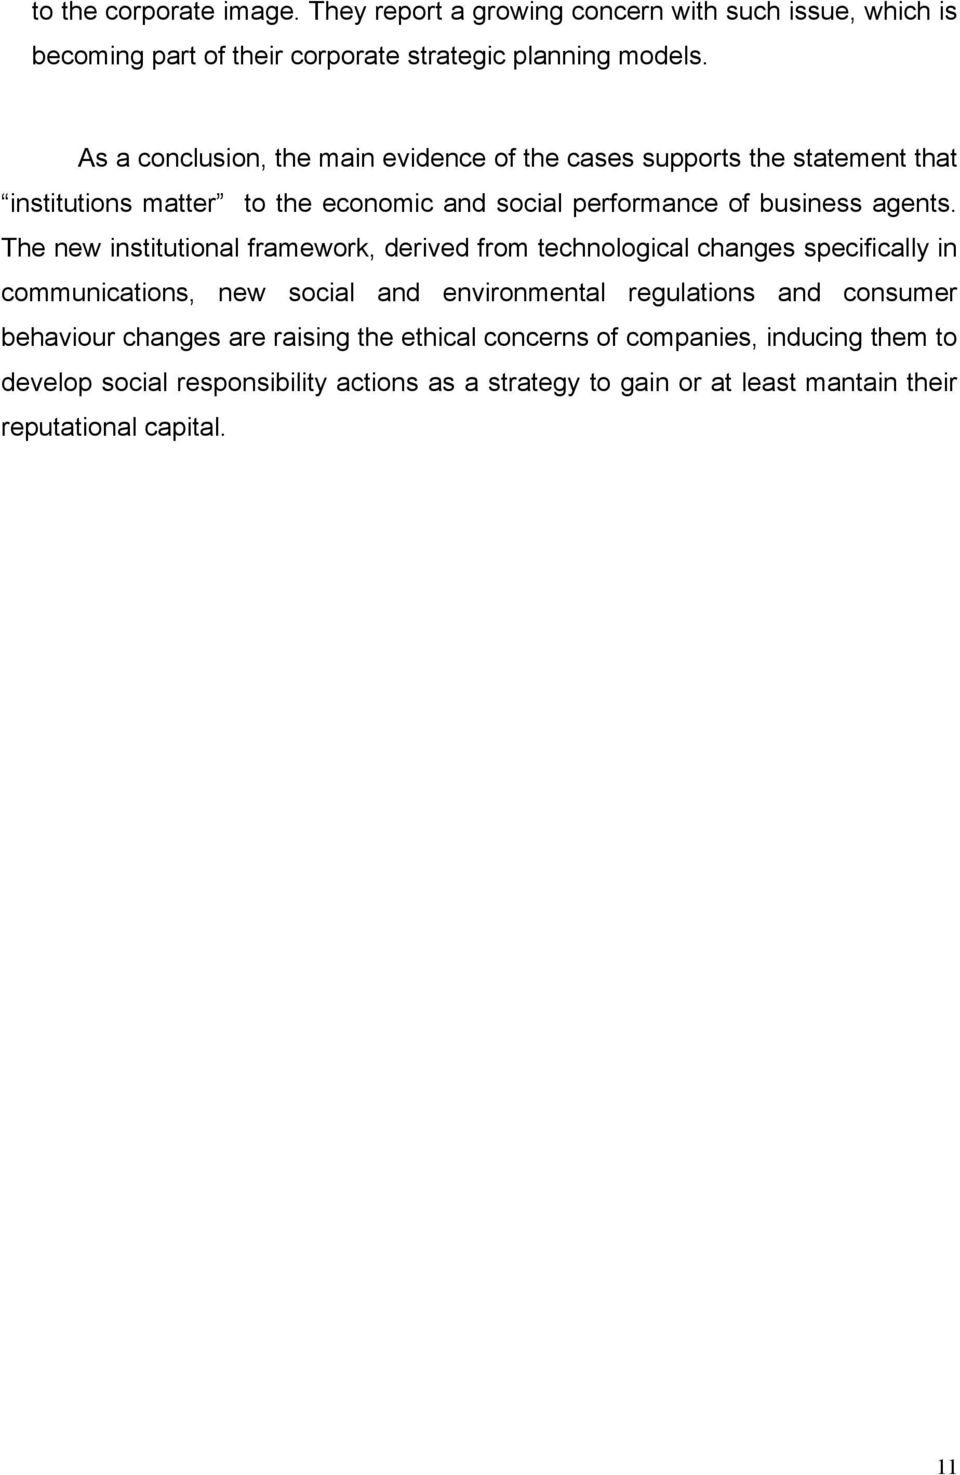 The new institutional framework, derived from technological changes specifically in communications, new social and environmental regulations and consumer